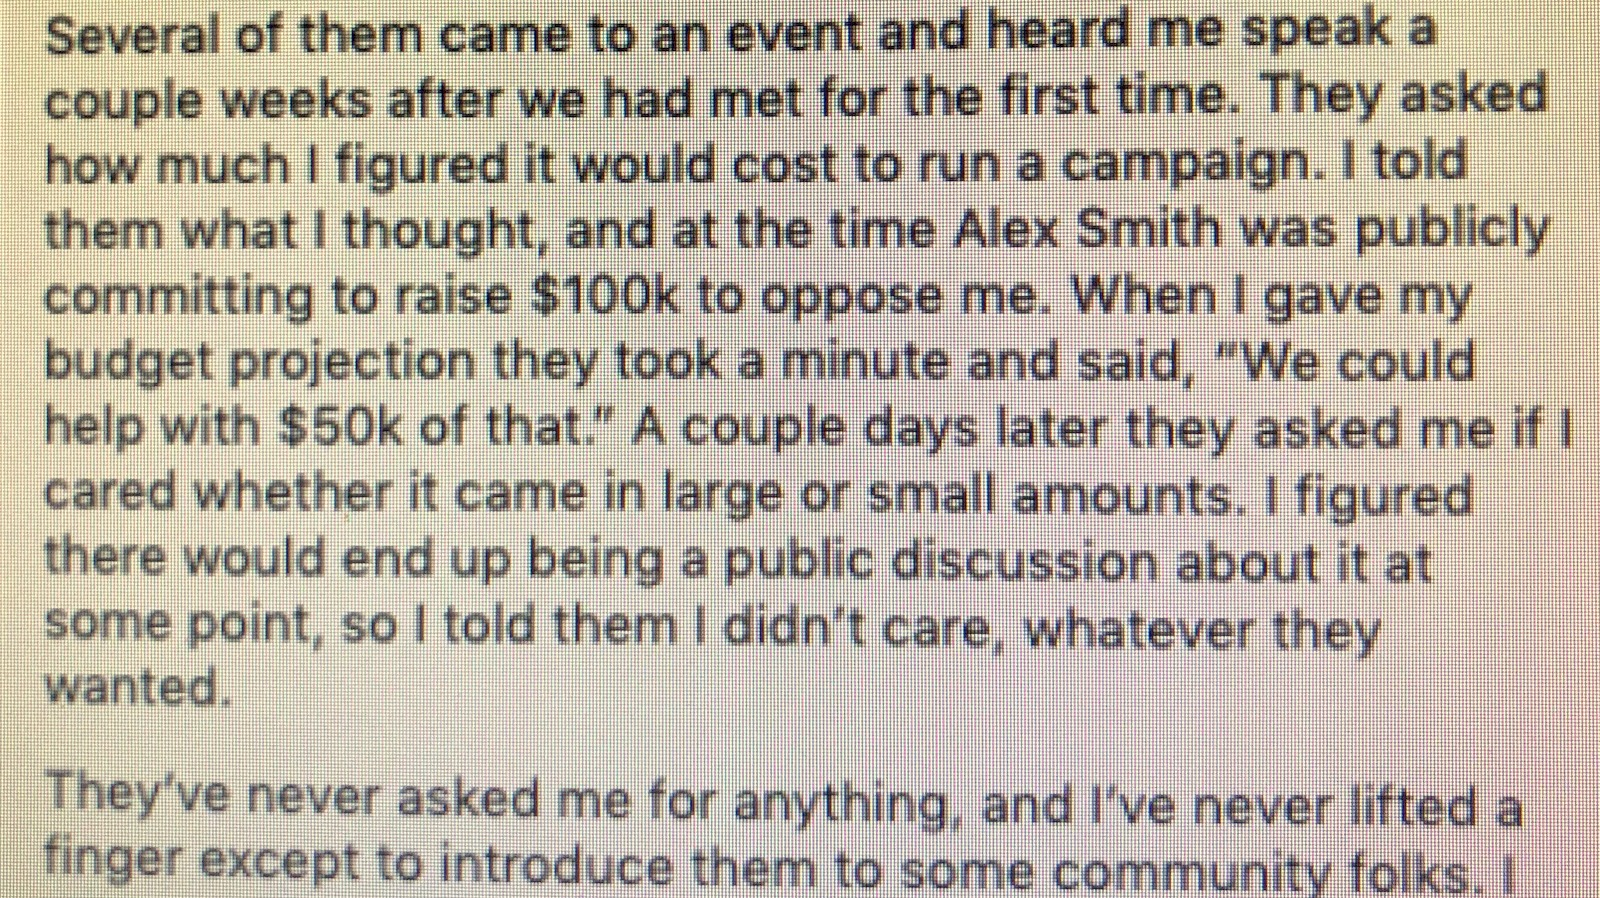 Ryan Dorsey Facebook comments about accepting $42,000 from people associated with CMDS, the company planning a drug treatment center in Hamilton.